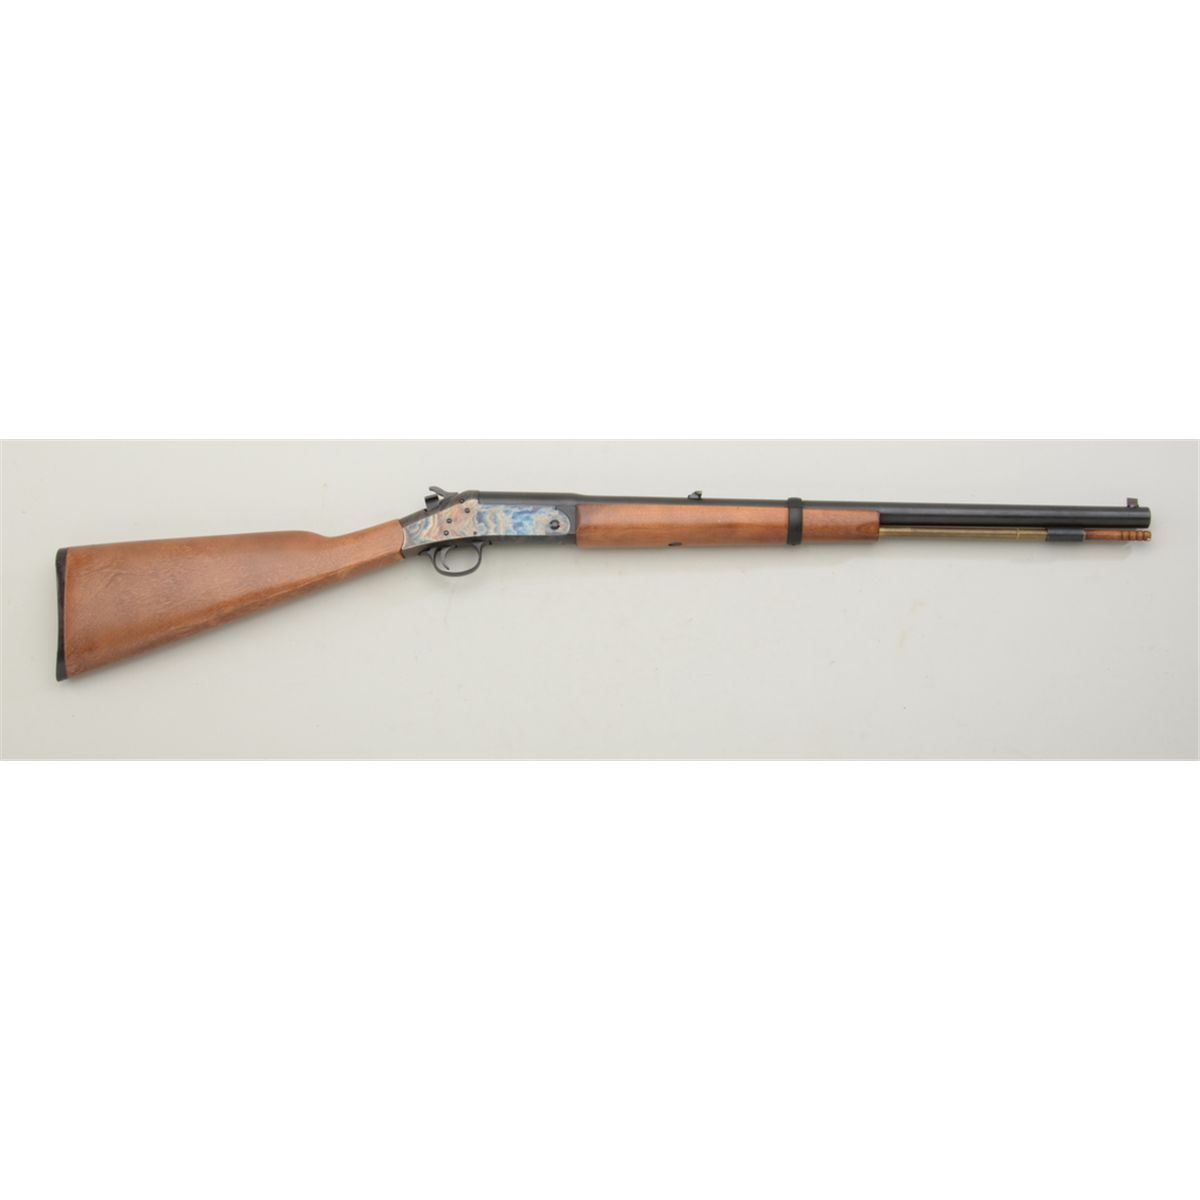 remington black singles The remington model 1858 with the remington model 1858 was one of the most powerful and rugged single pietta model 1858 new army 44-caliber black.